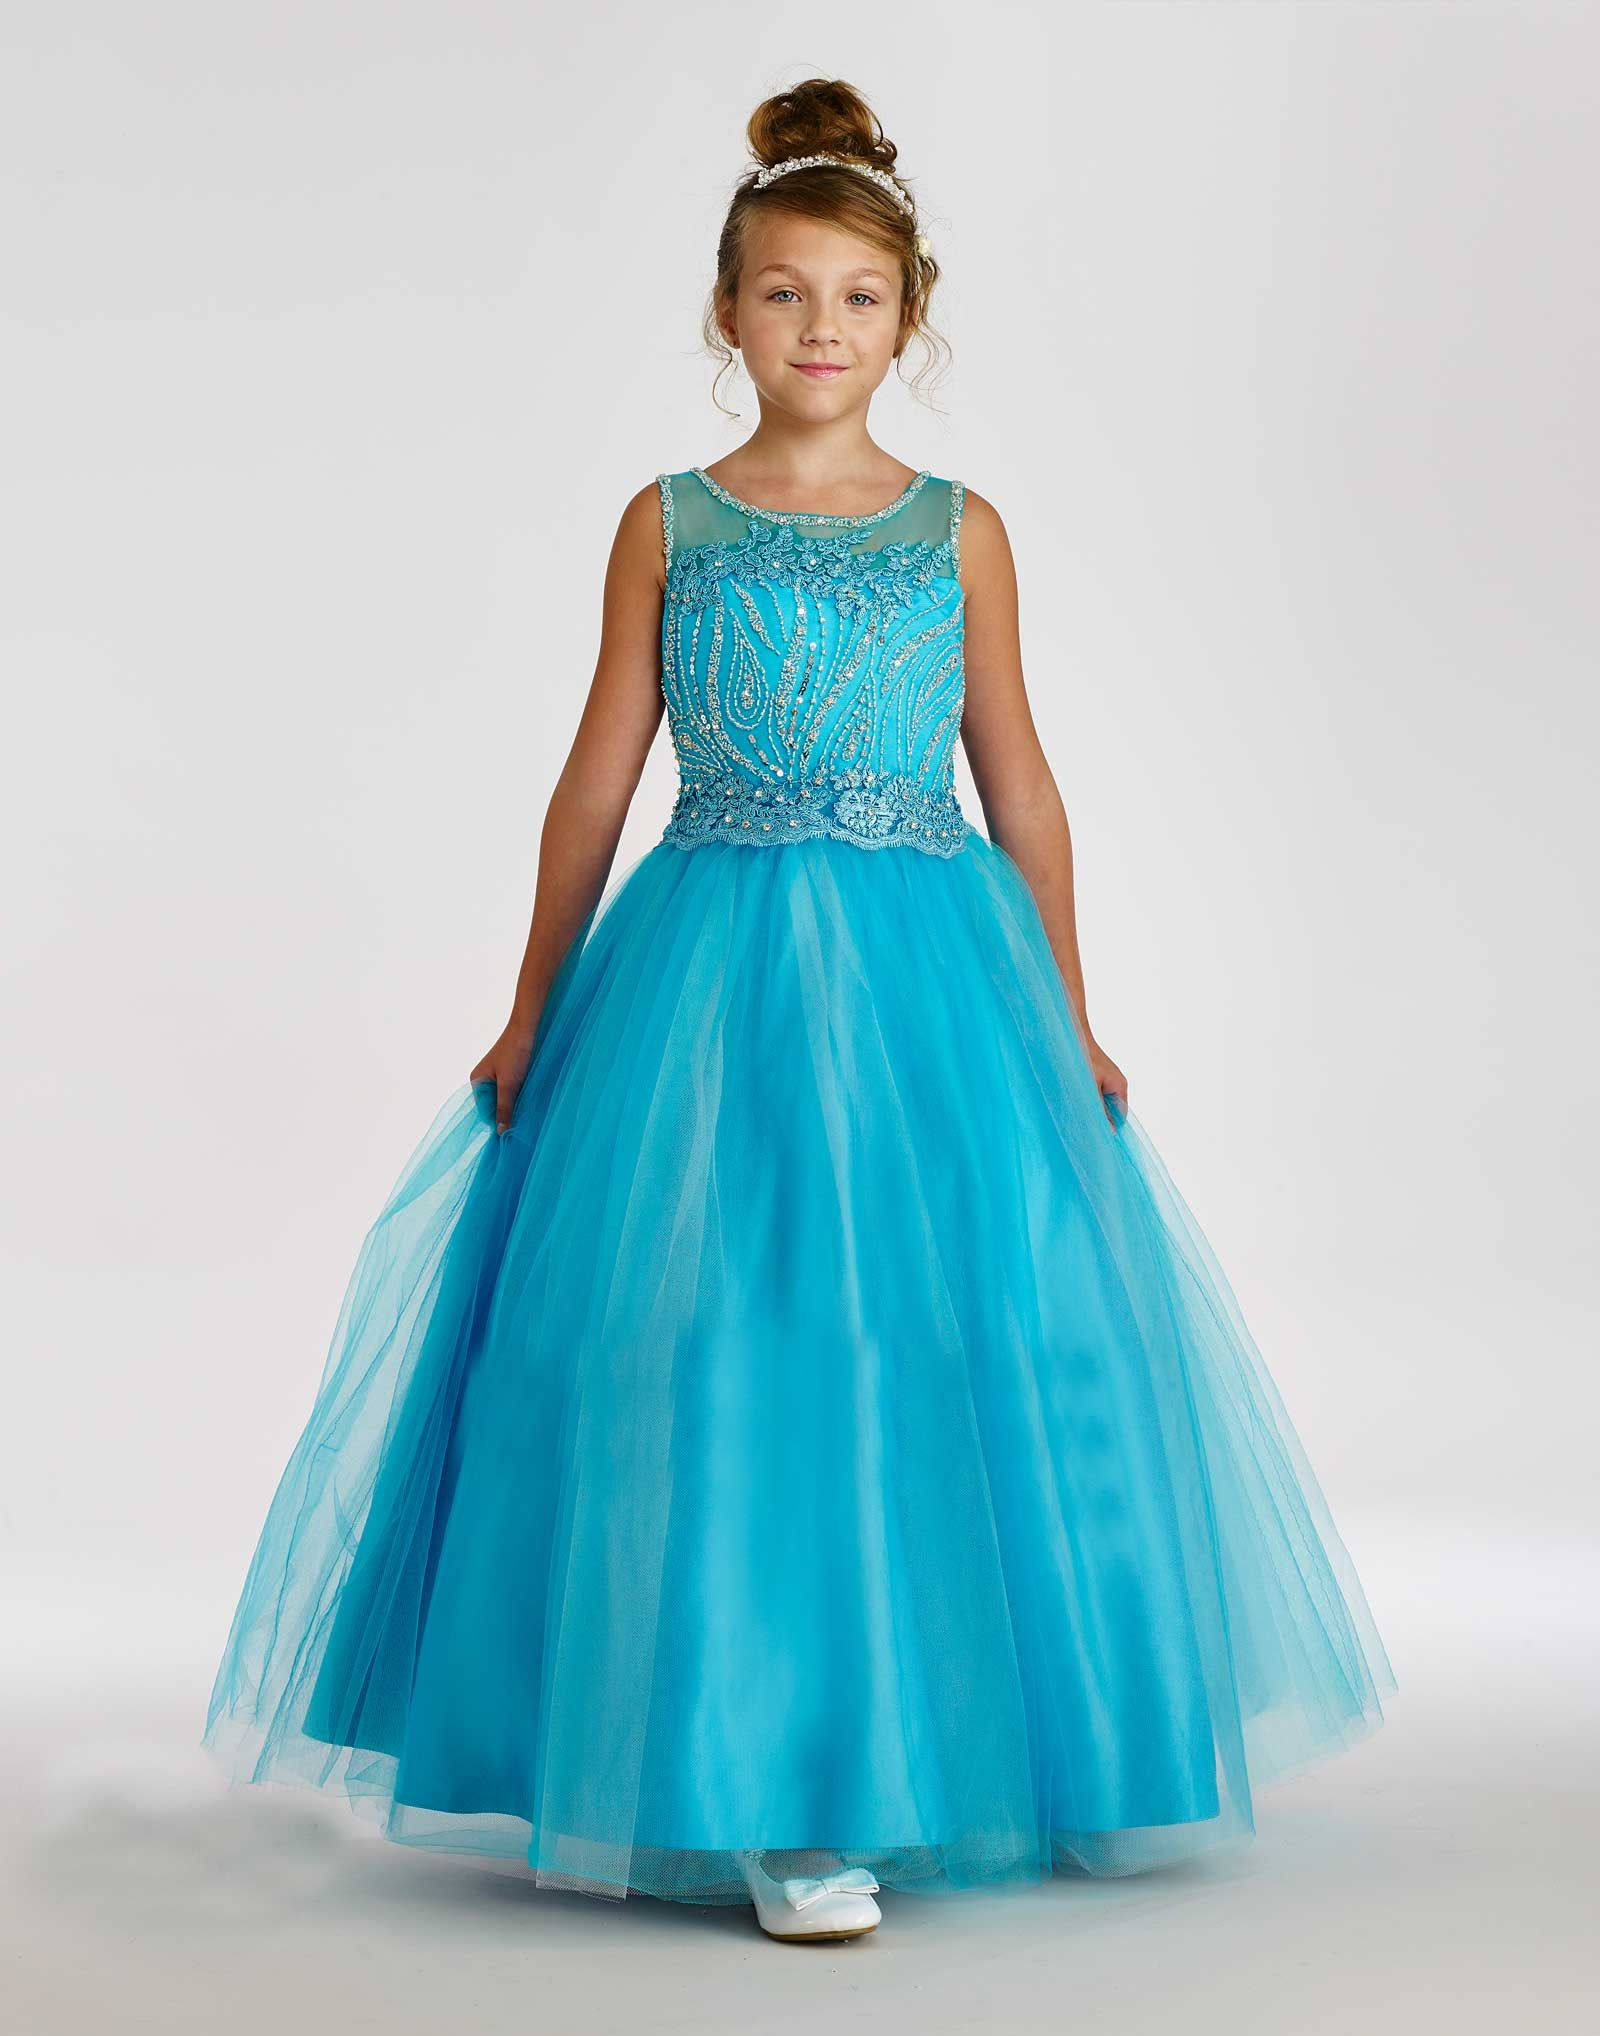 Macis couturedesigner girls dress style embroidered tulle